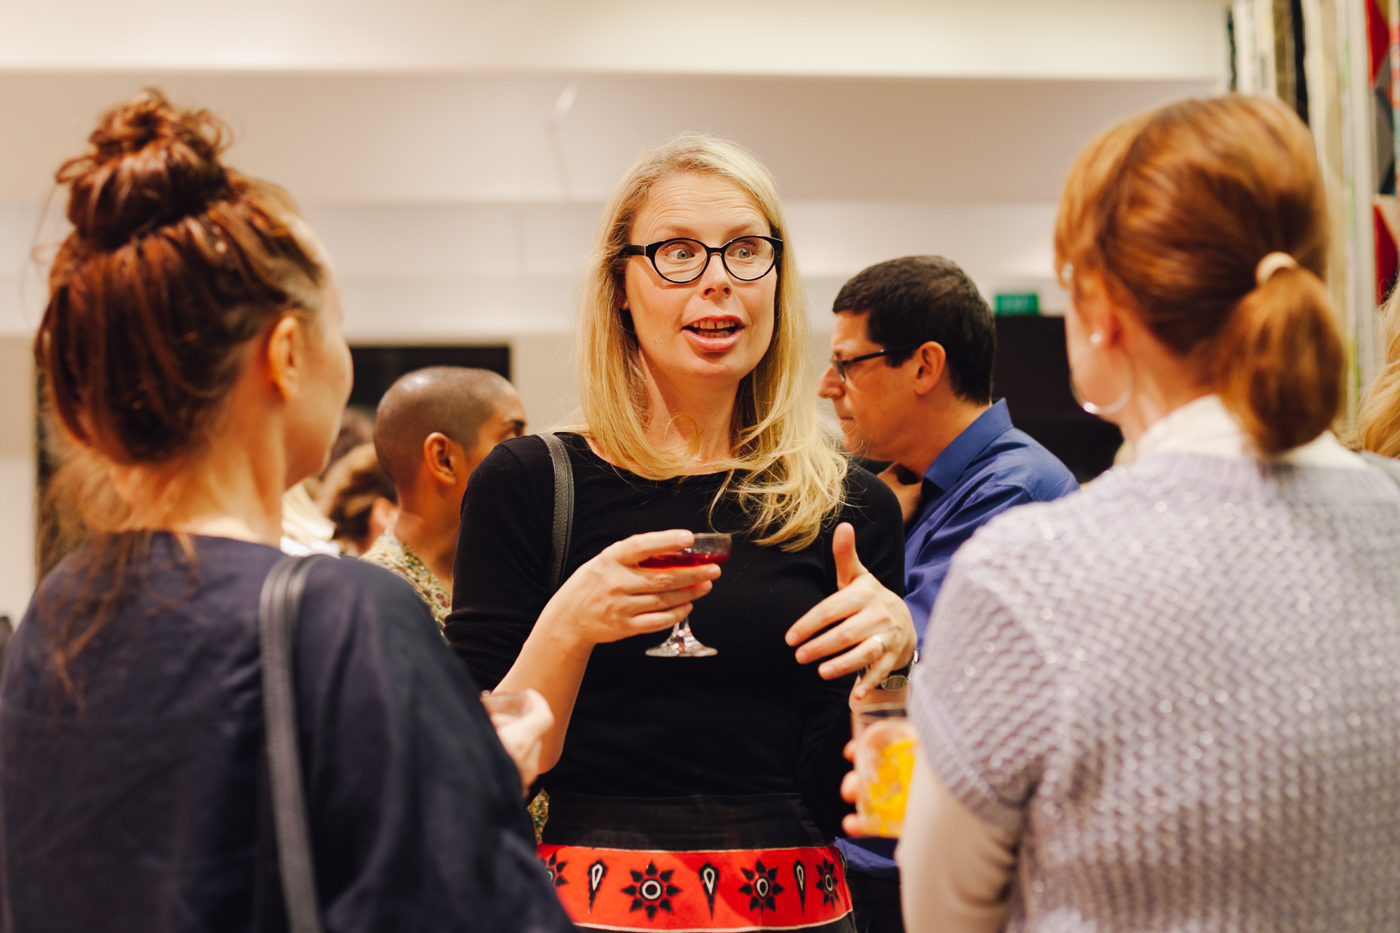 Jess Reftel Evans... responsible for the beautiful collection images | NEW AGAIN by Petrina Turner Design for Designer Rugs | The launch event